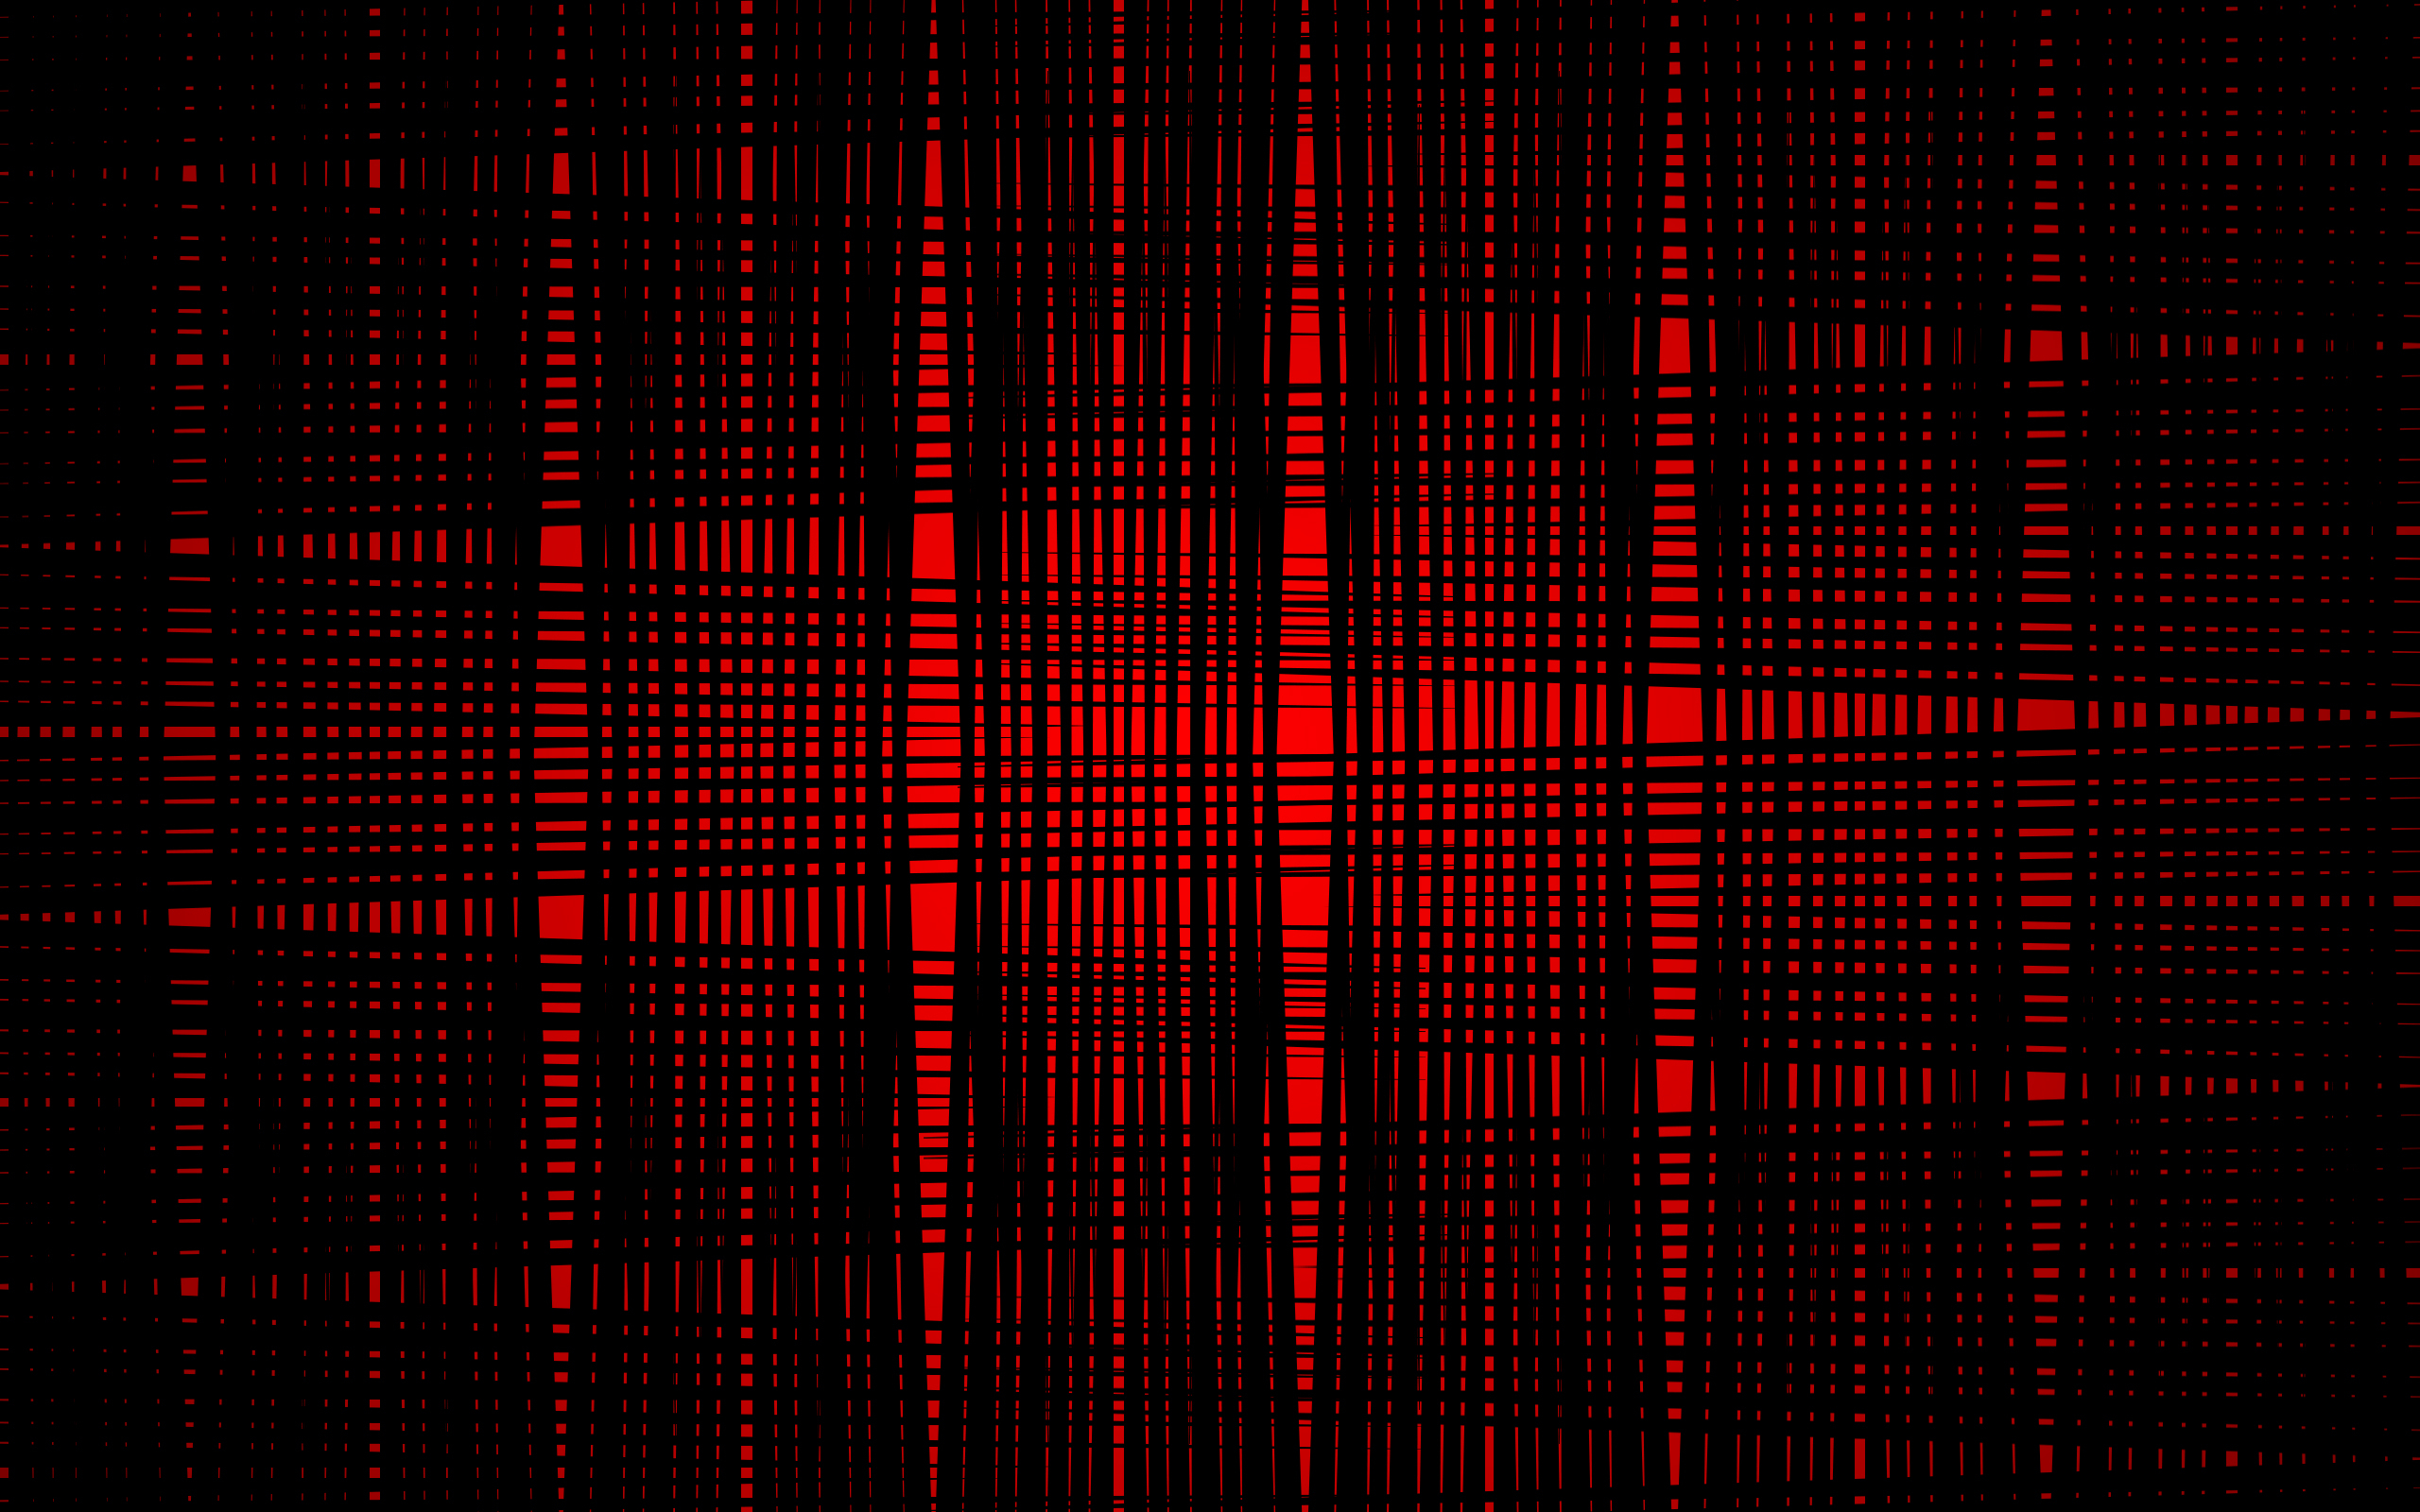 red black wallpaper 4k